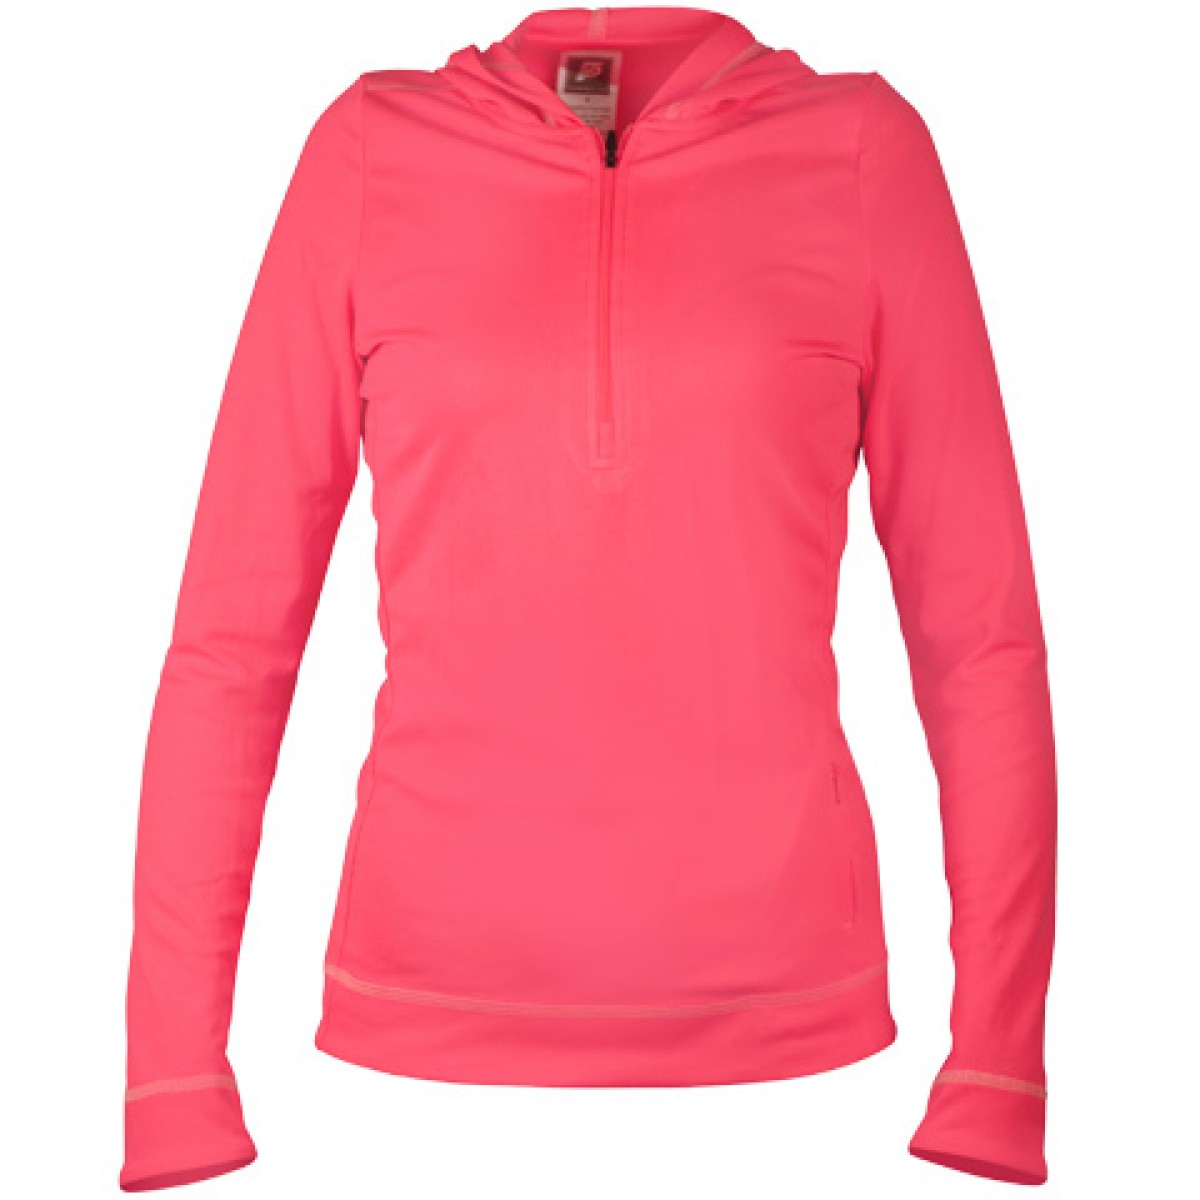 Half-Zip Neon Pink Ladies Long-Sleeve Hoodie